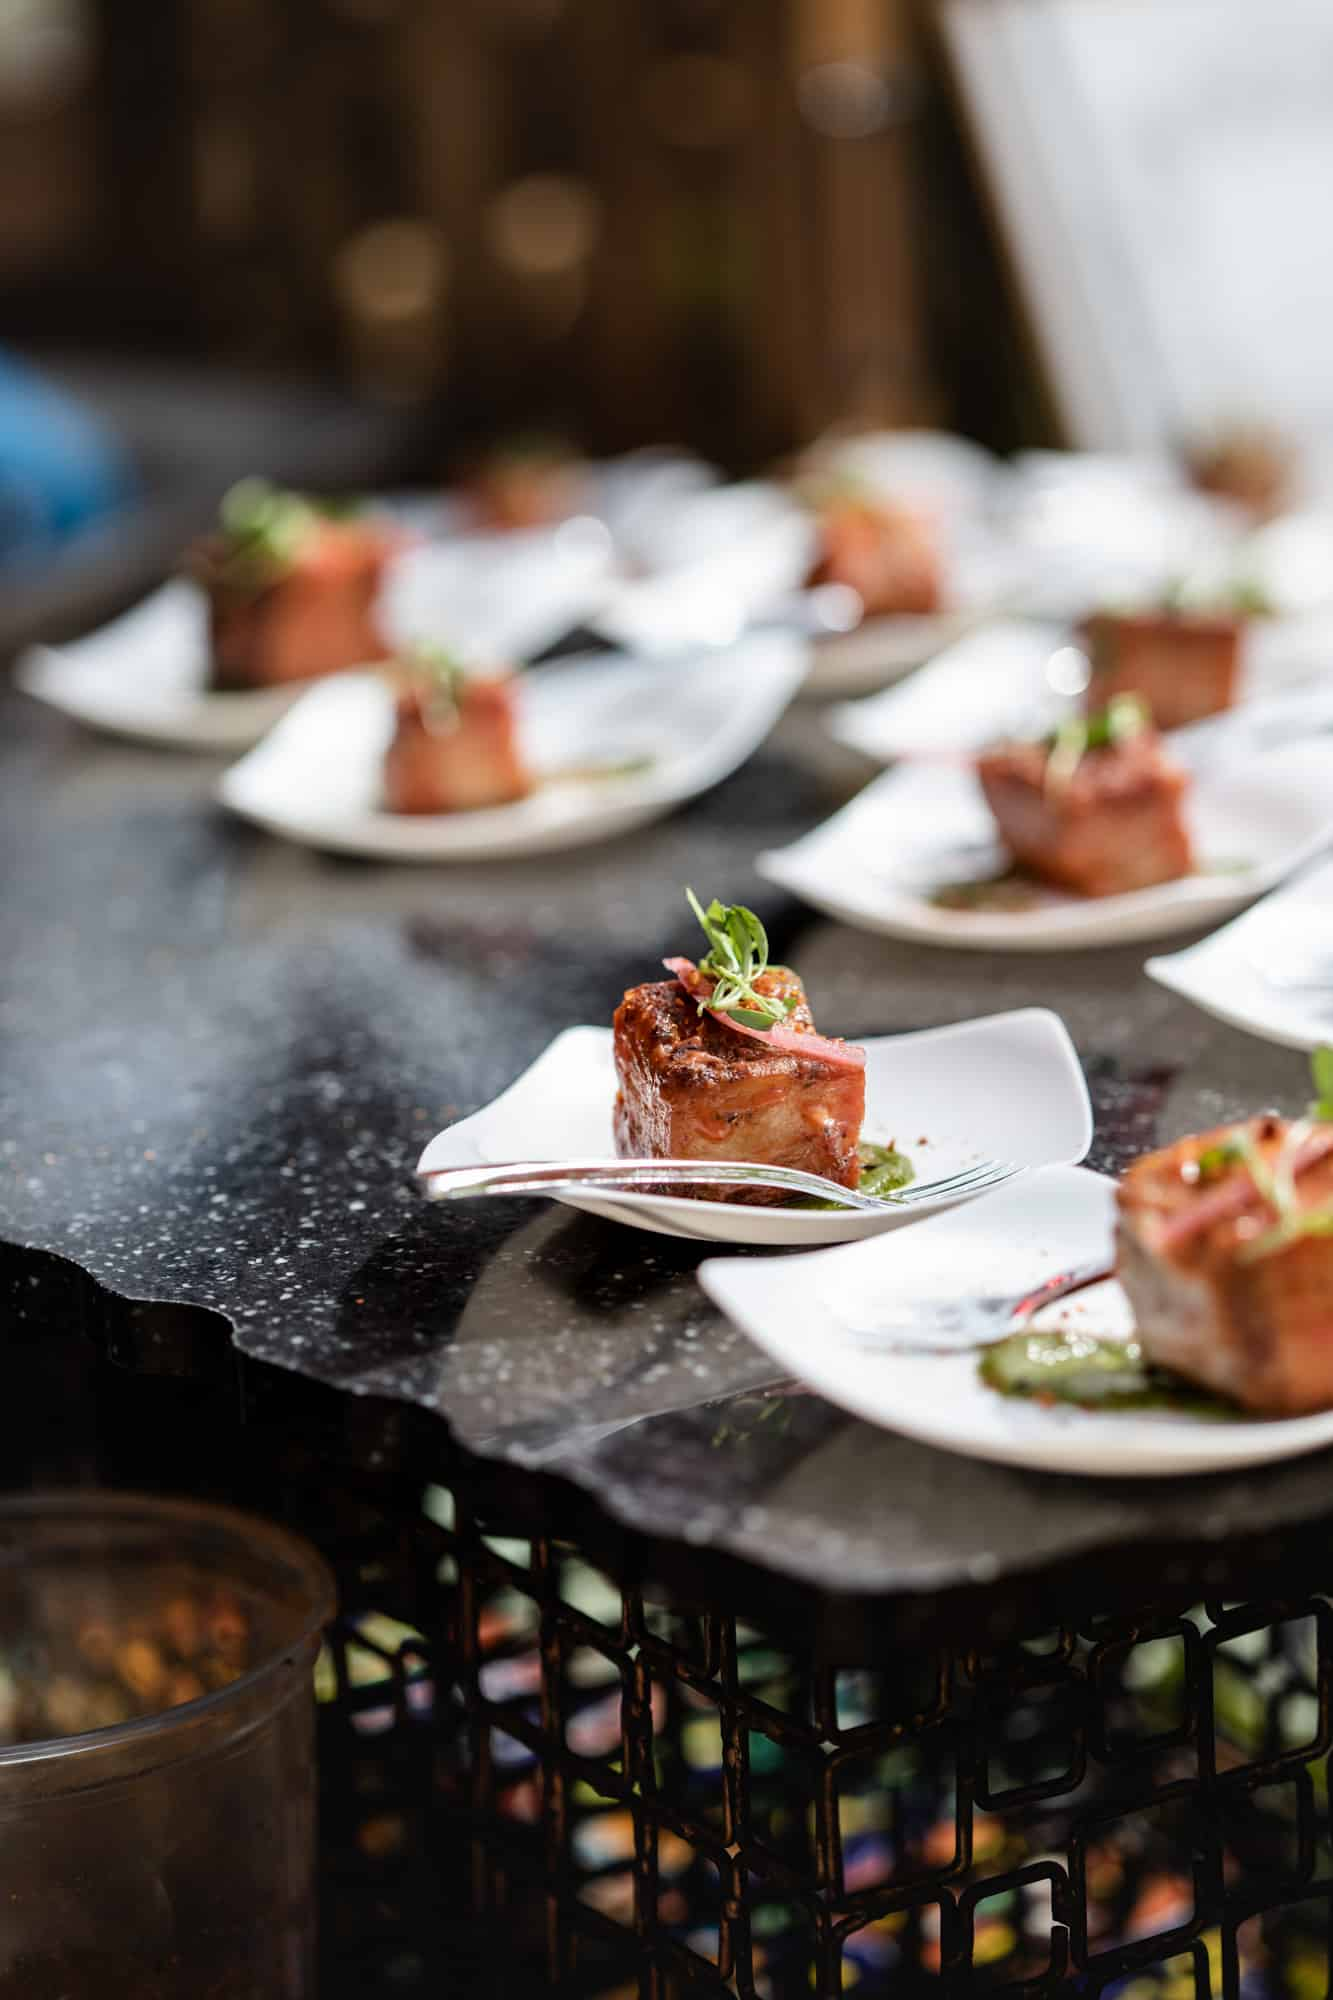 Crispy Pork Belly Bites on white plates